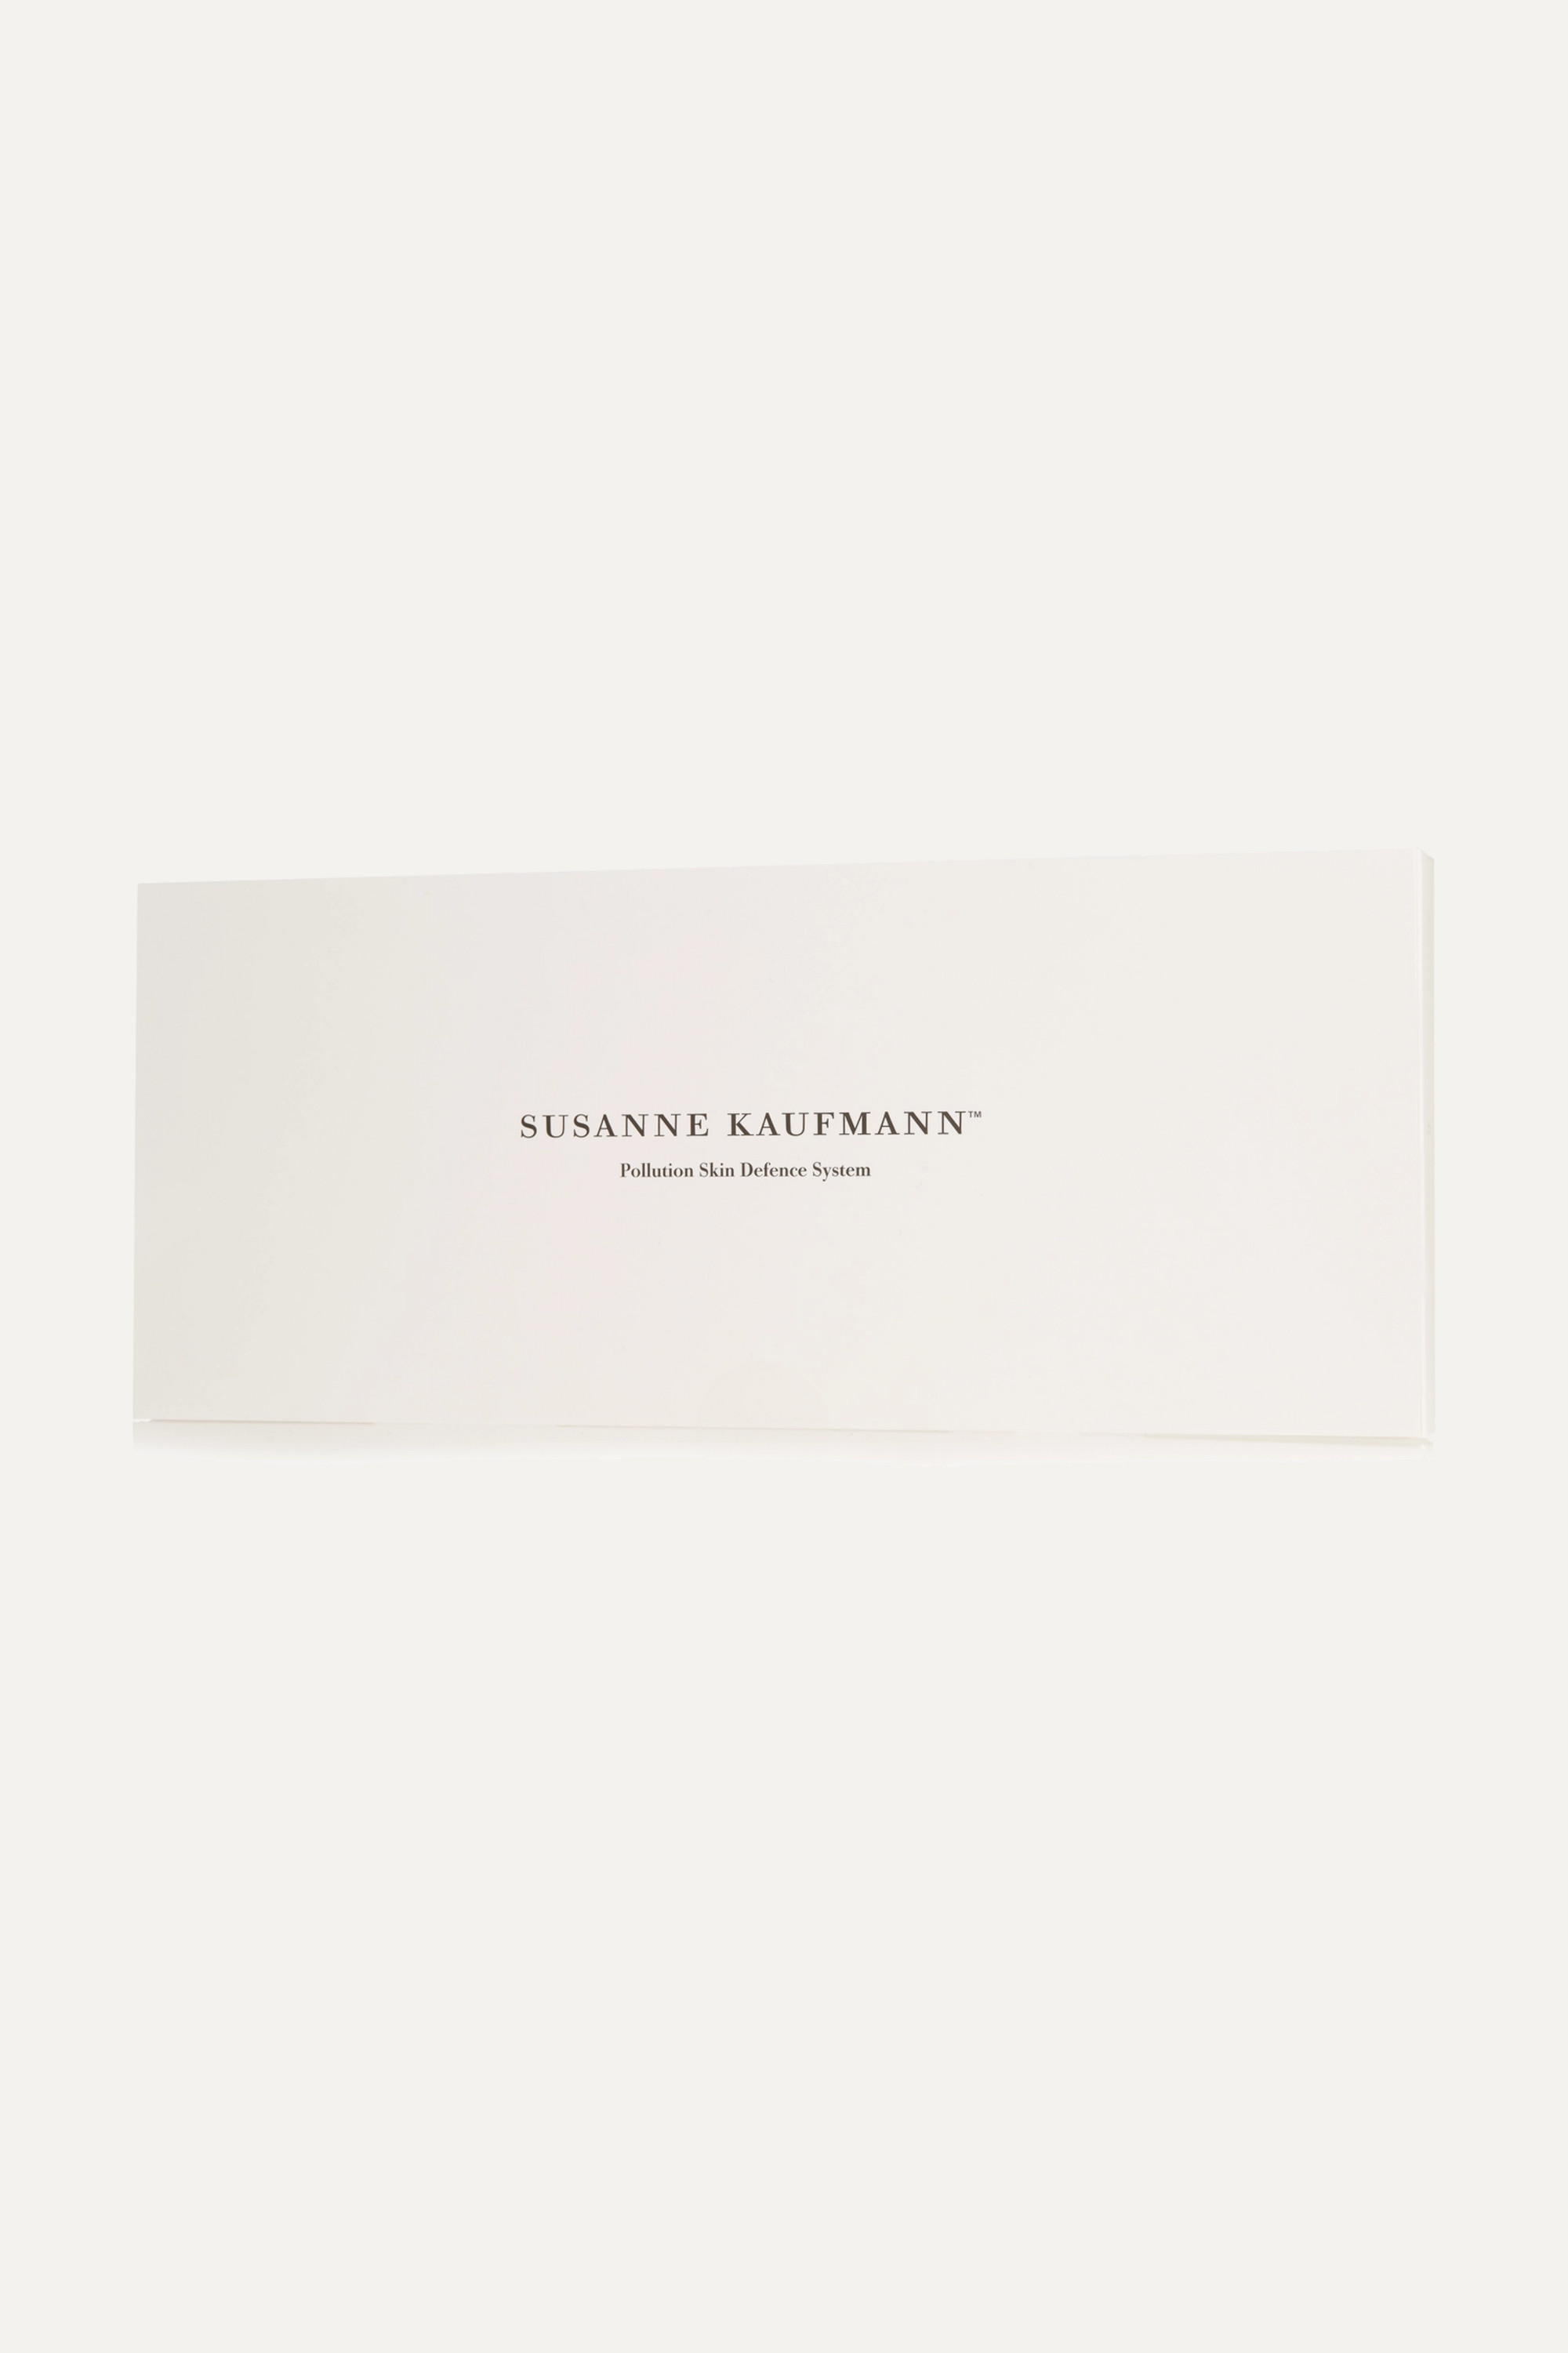 SUSANNE KAUFMANN Pollution Skin Defence System